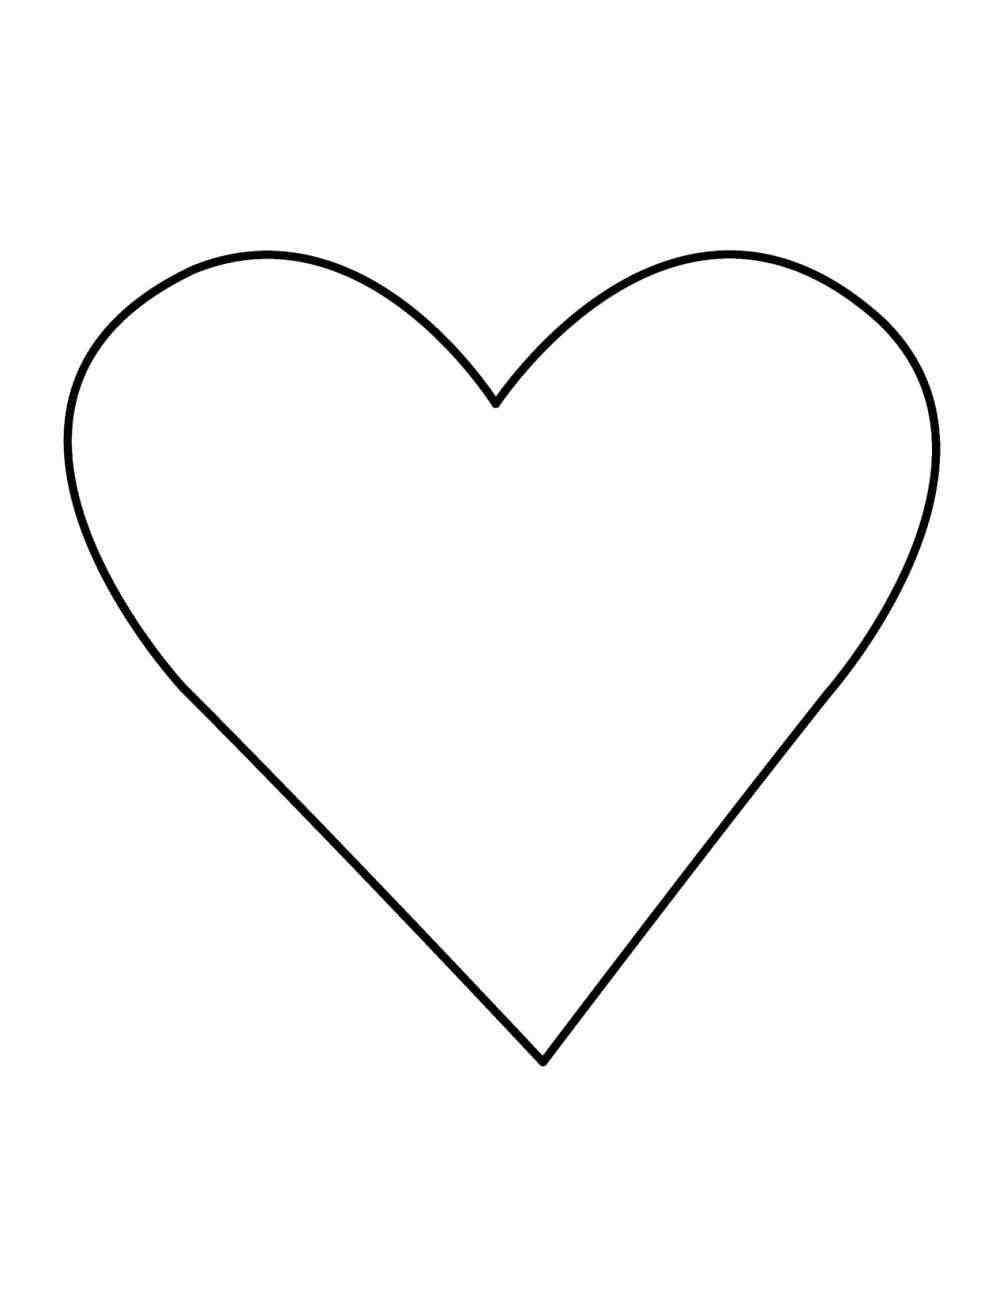 1007x1304 Wedding Hearts Clipart Black And White